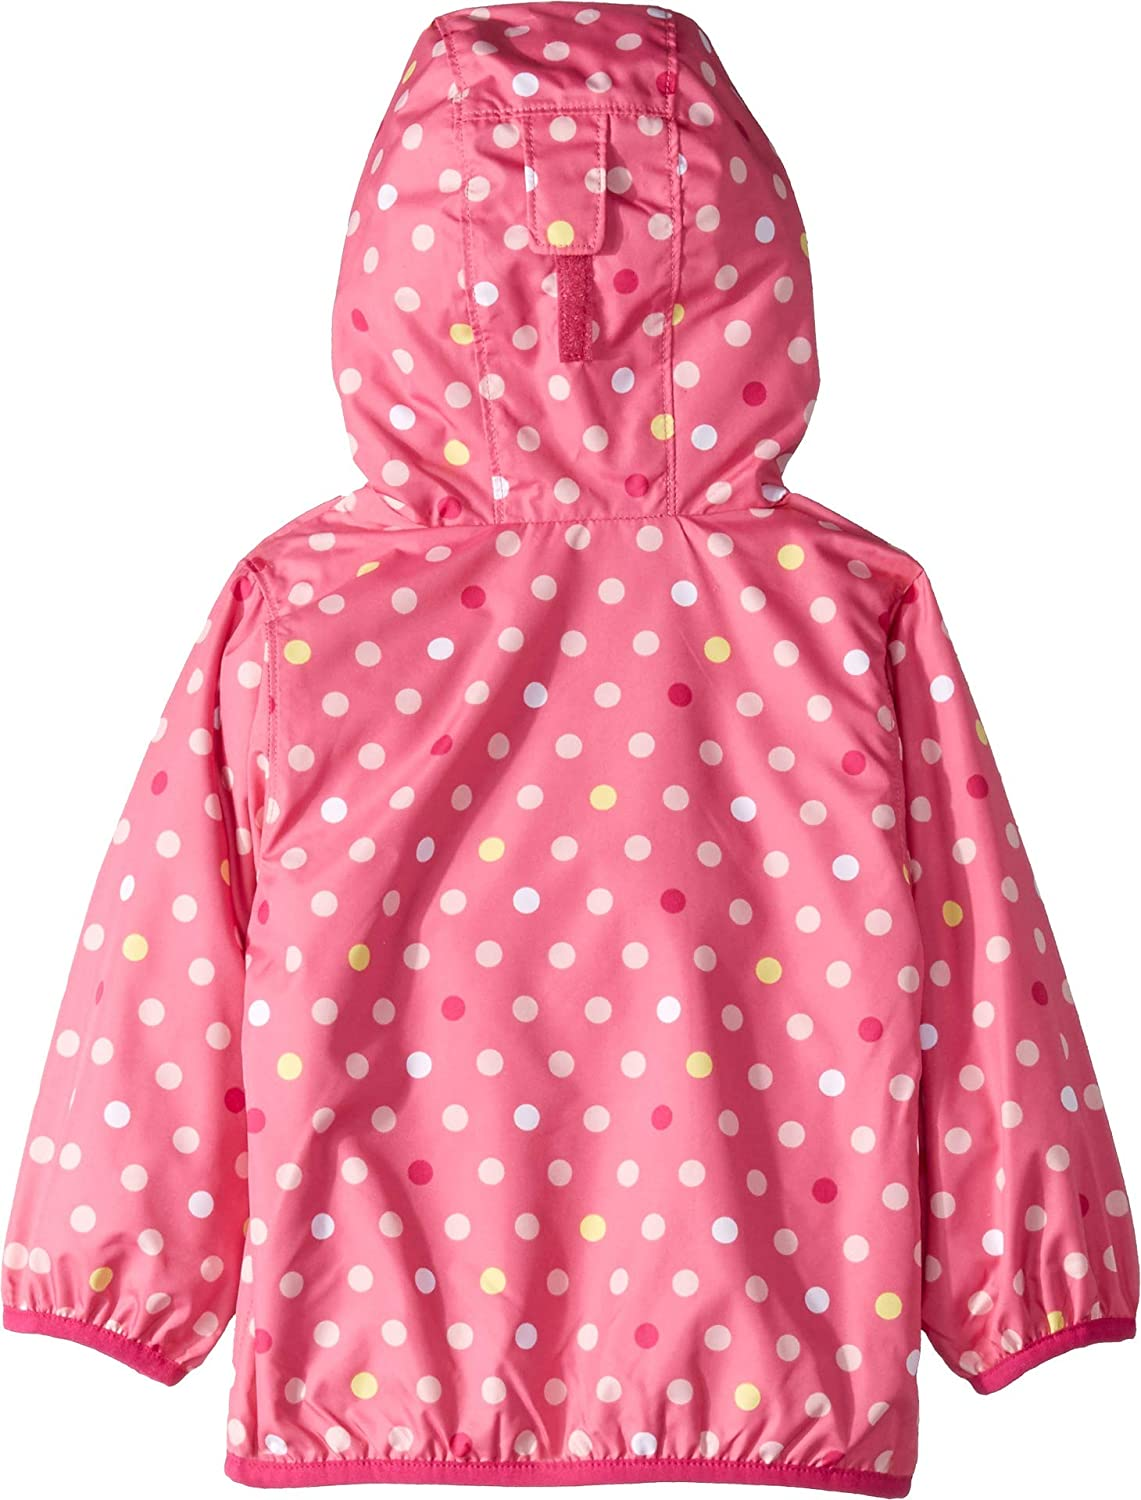 Wild Geranium Polkadot 18-24 Months Infant//Toddler Columbia Kids Baby Girls Mini Pixel Grabber/¿ II Wind Jacket